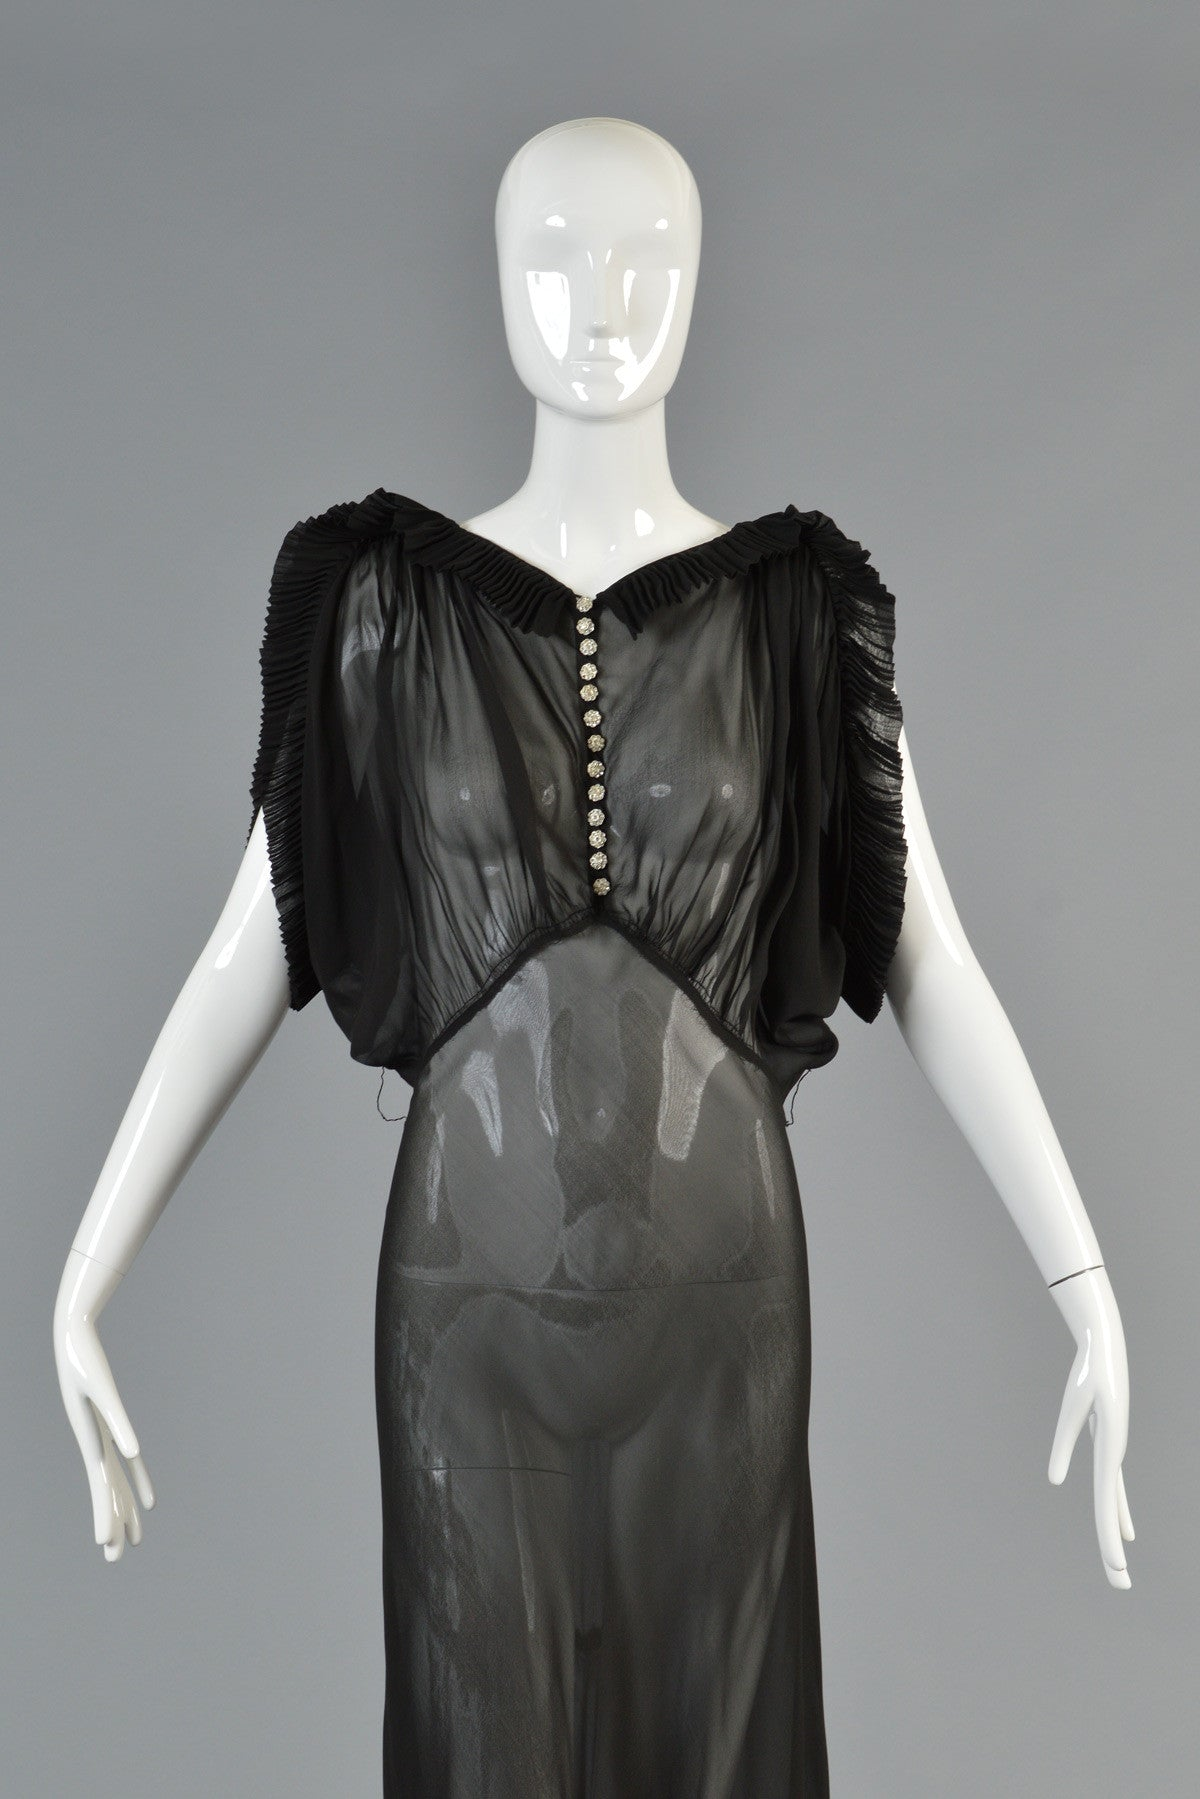 1930s Black Sheer Evening Gown w/Open Draped Sleeves | BUSTOWN MODERN